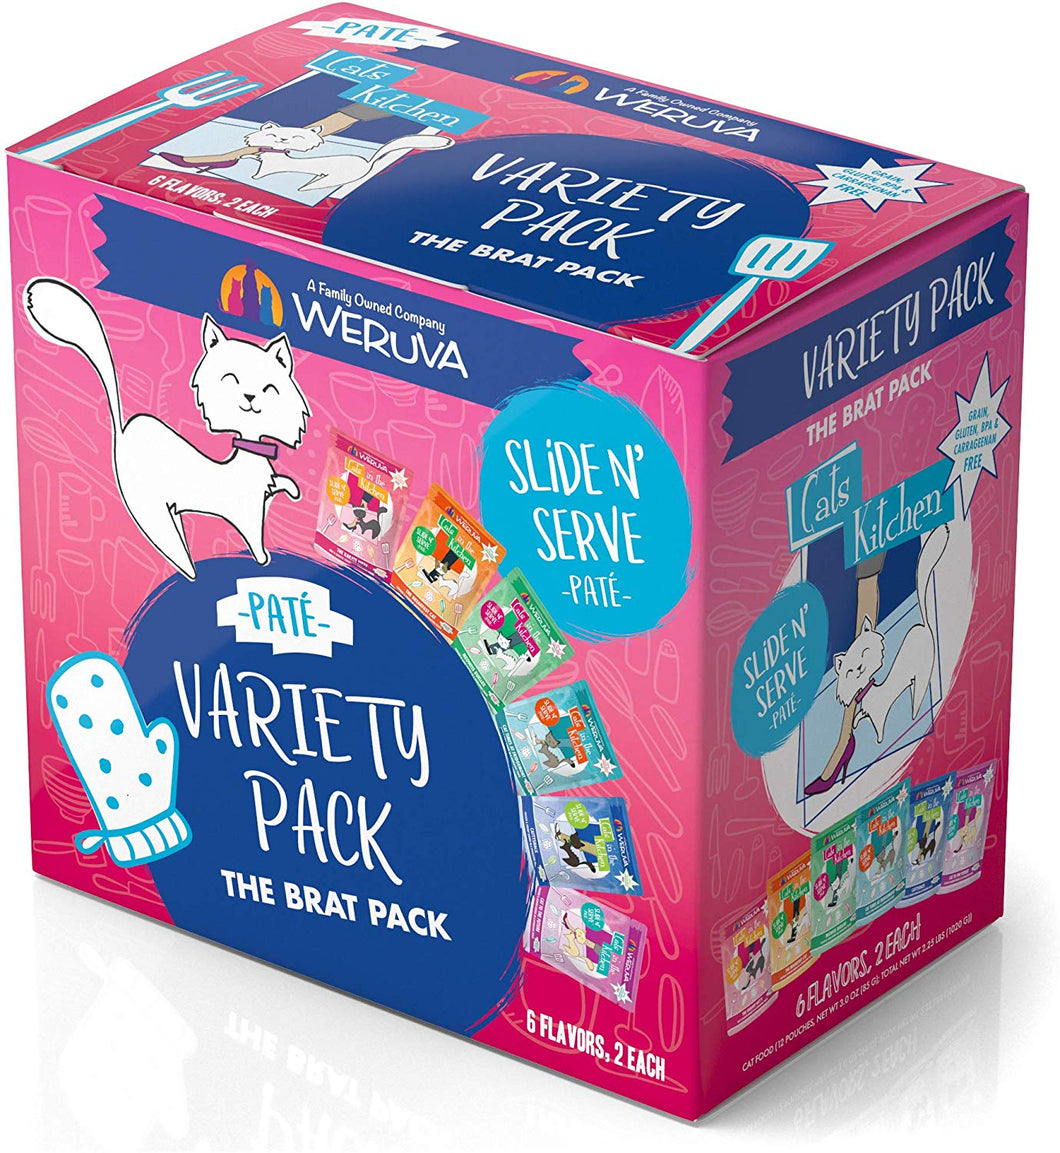 Weruva Cats in the Kitchen Slide N' Serve™ Pate The Brat Pack Variety Pack Pouch Cat Food 3 Oz 12 Pouches